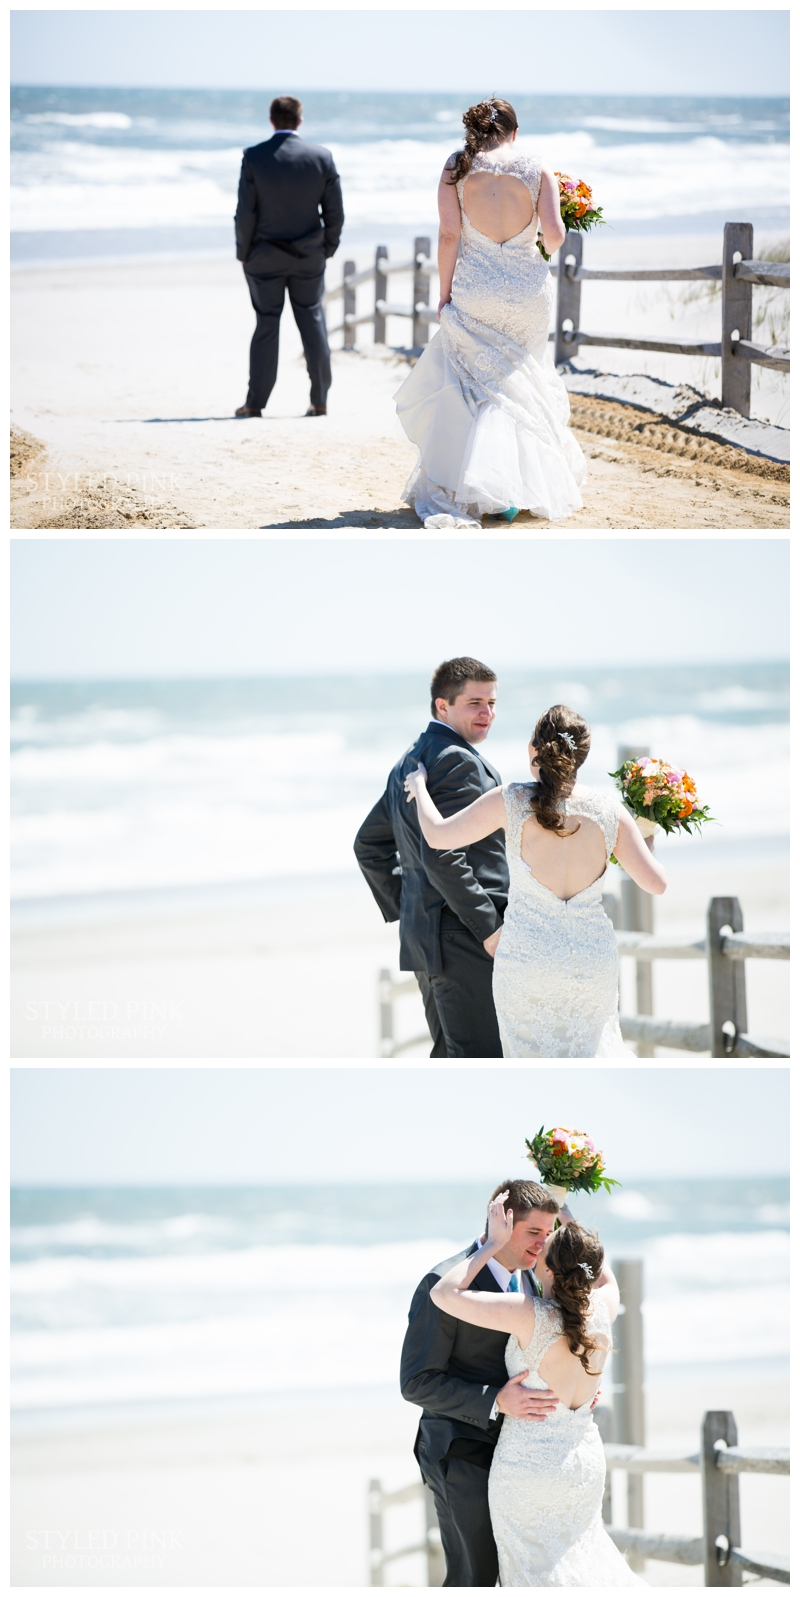 Brittany and Brian had a First Look just steps away from their venue, the Windrift Hotel in Avalon, NJ.